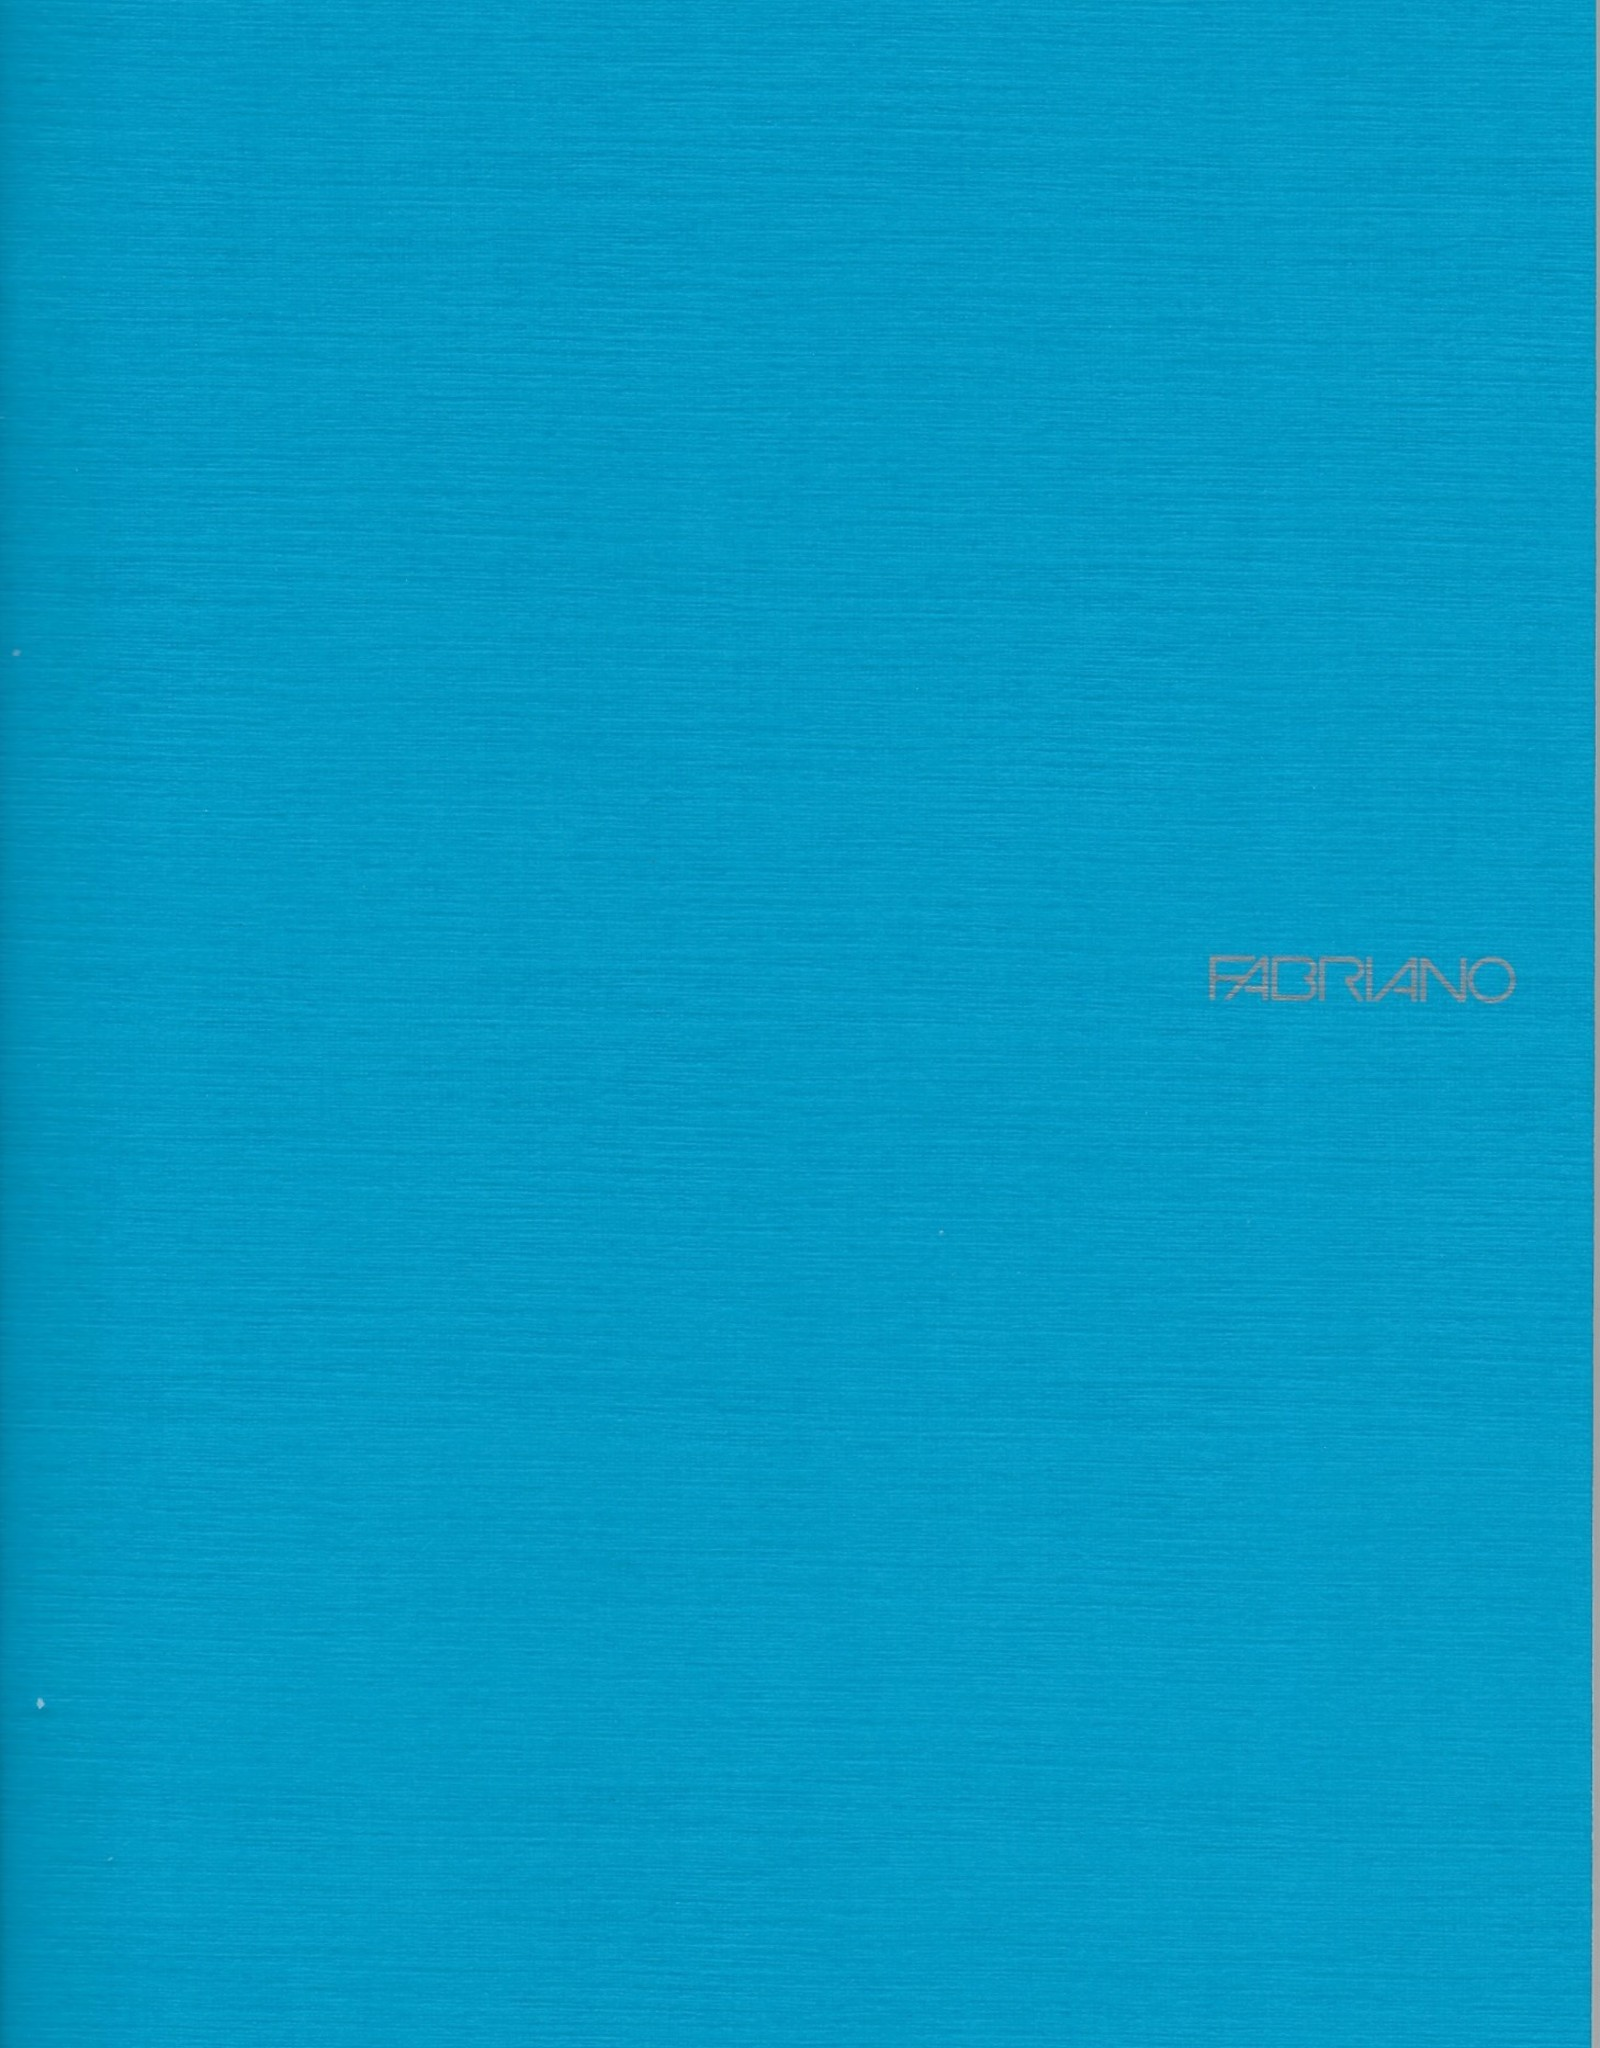 """Fabriano EcoQua Blank Notebook, Turquoise, 8.25"""" x 11.5"""" 40 Sheets"""